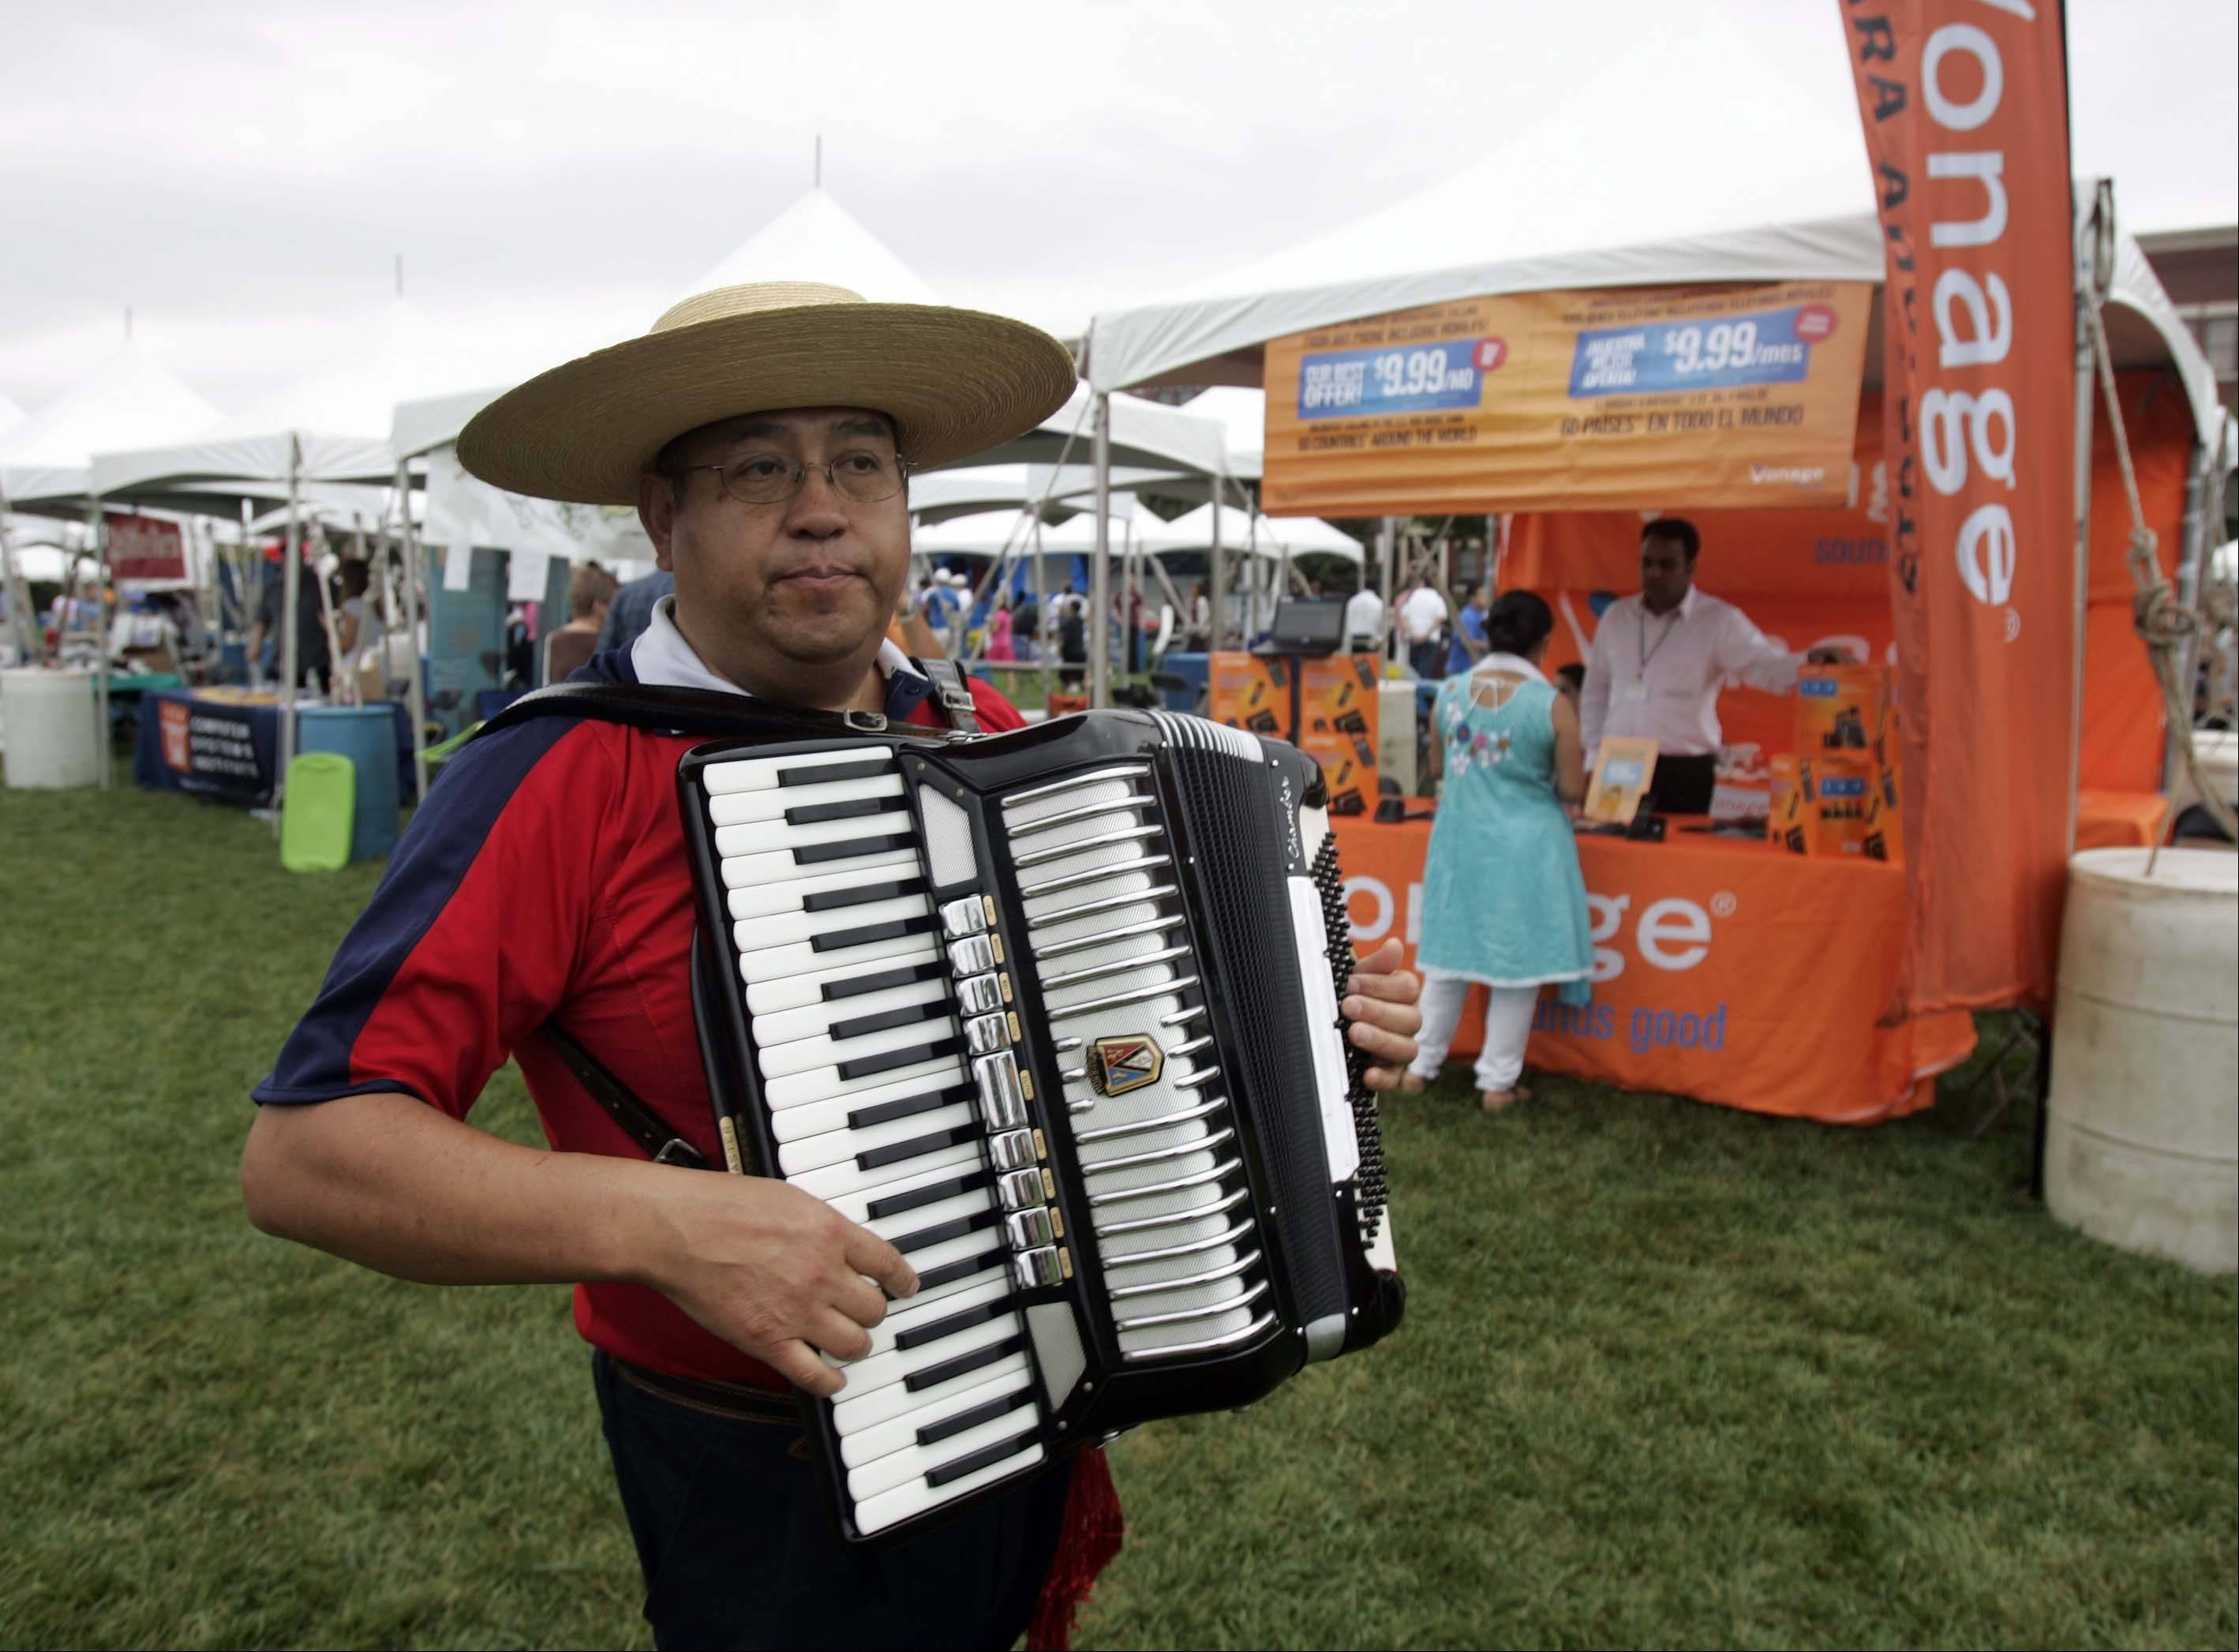 Henoch Fuentes of Elgin makes his way to the stage as he plays the national anthem of Chile during Elgin's first international festival at Festival Park in Elgin.